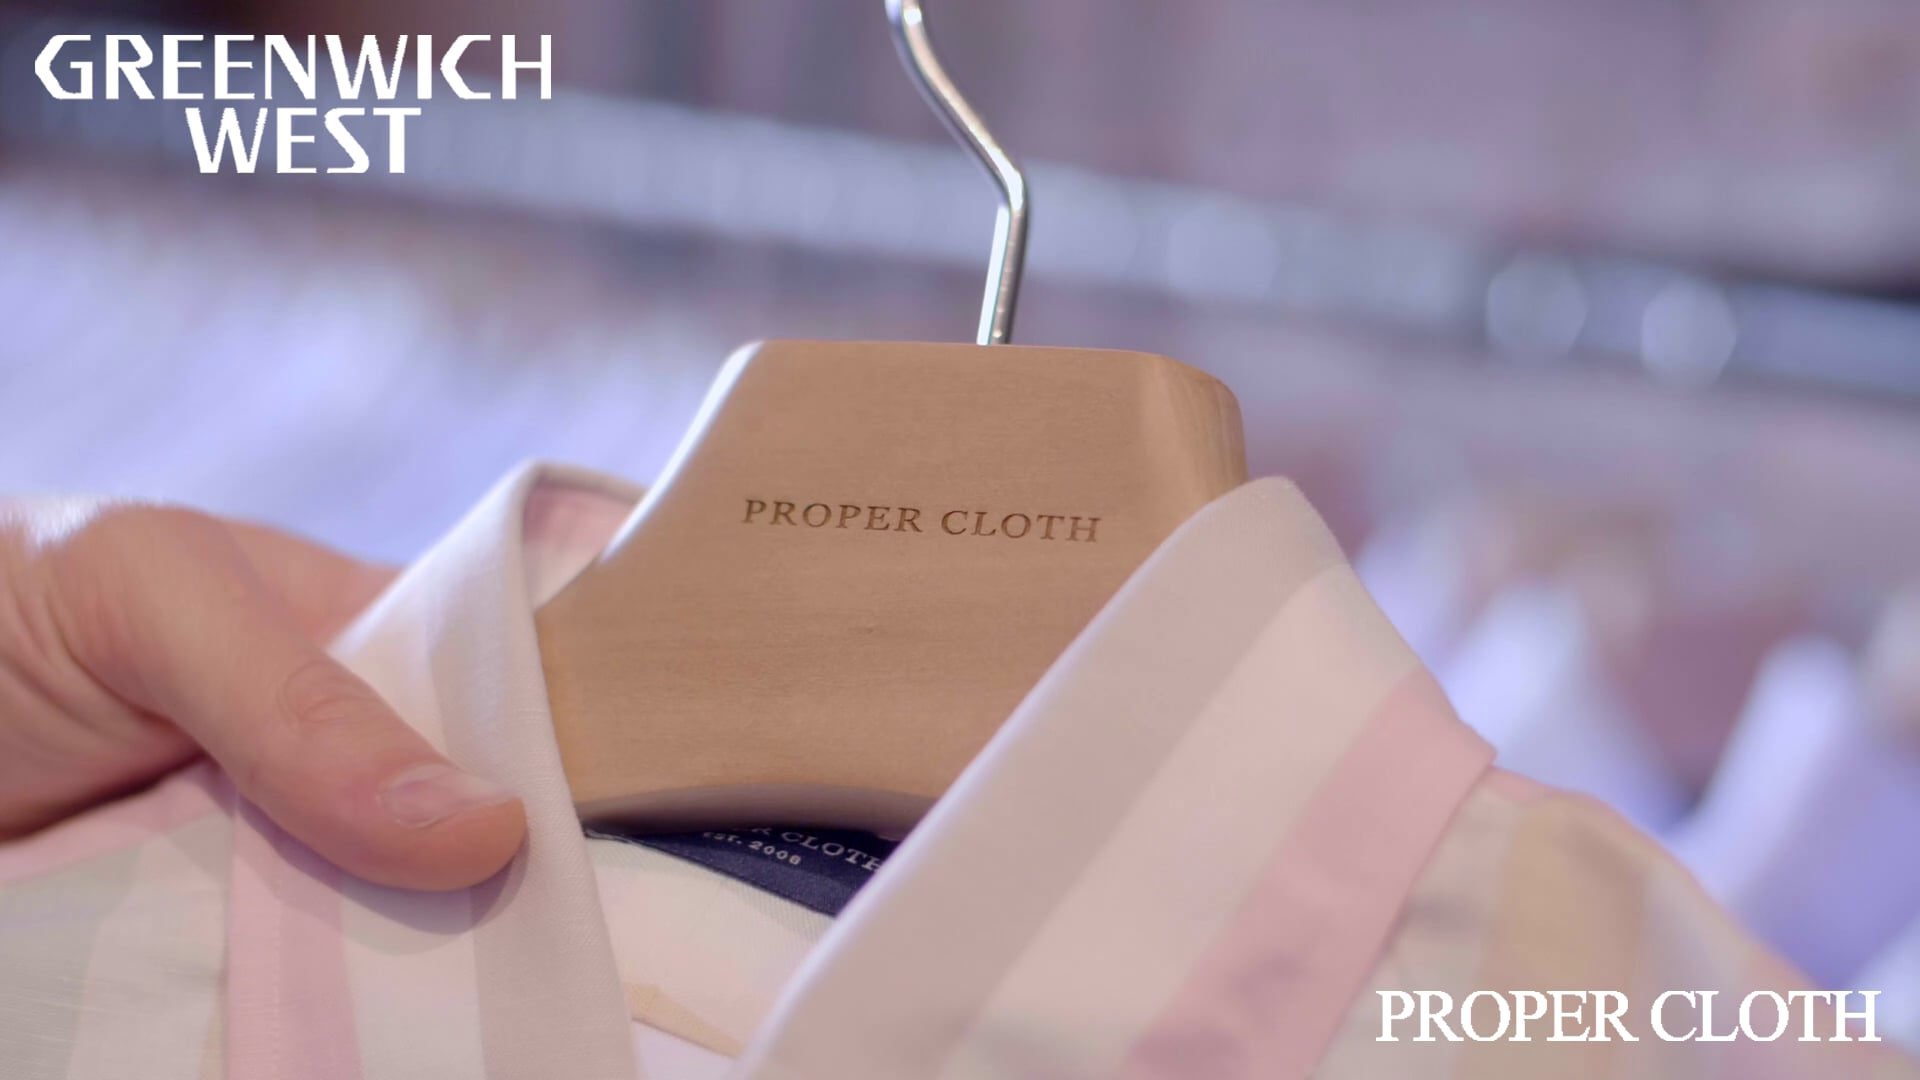 GREENWICH WEST - THE TASTEMAKERS - PROPER CLOTH